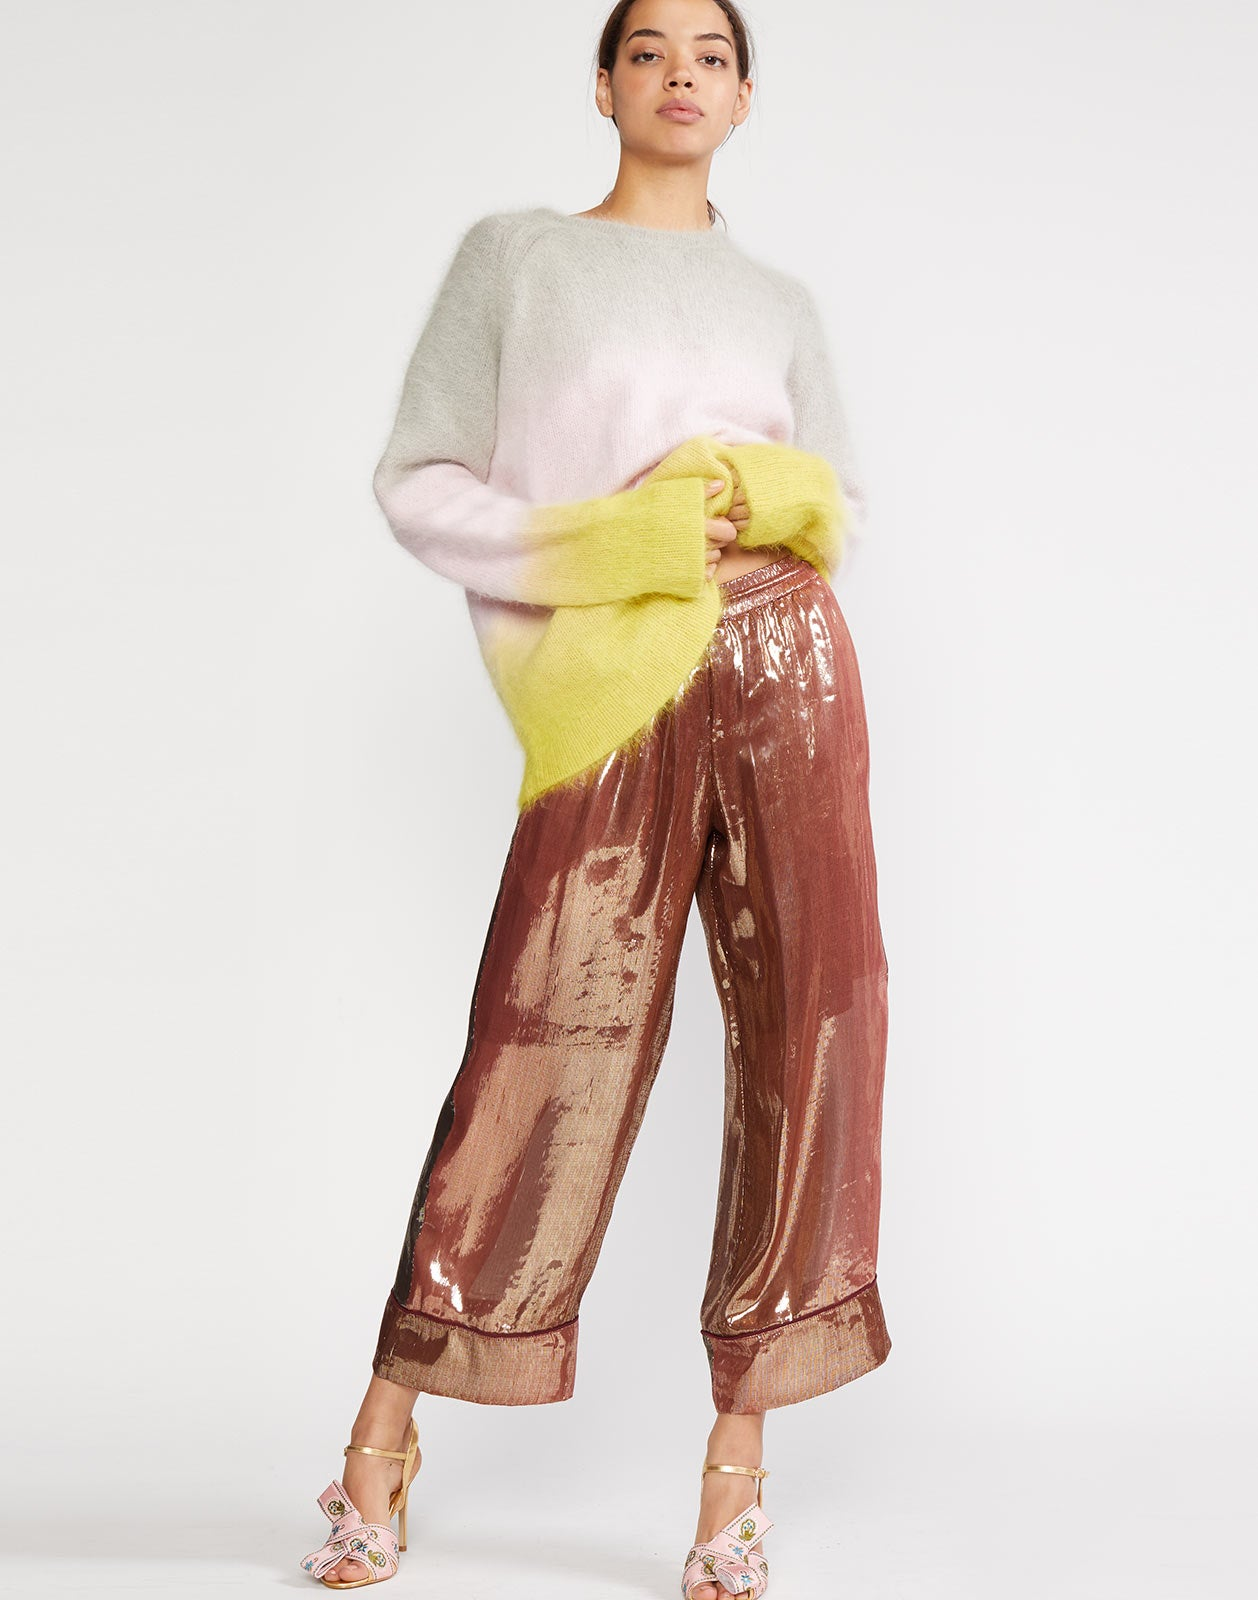 Full view of Finley Silk Lamé  Pant with elastic waist band and drawstring.